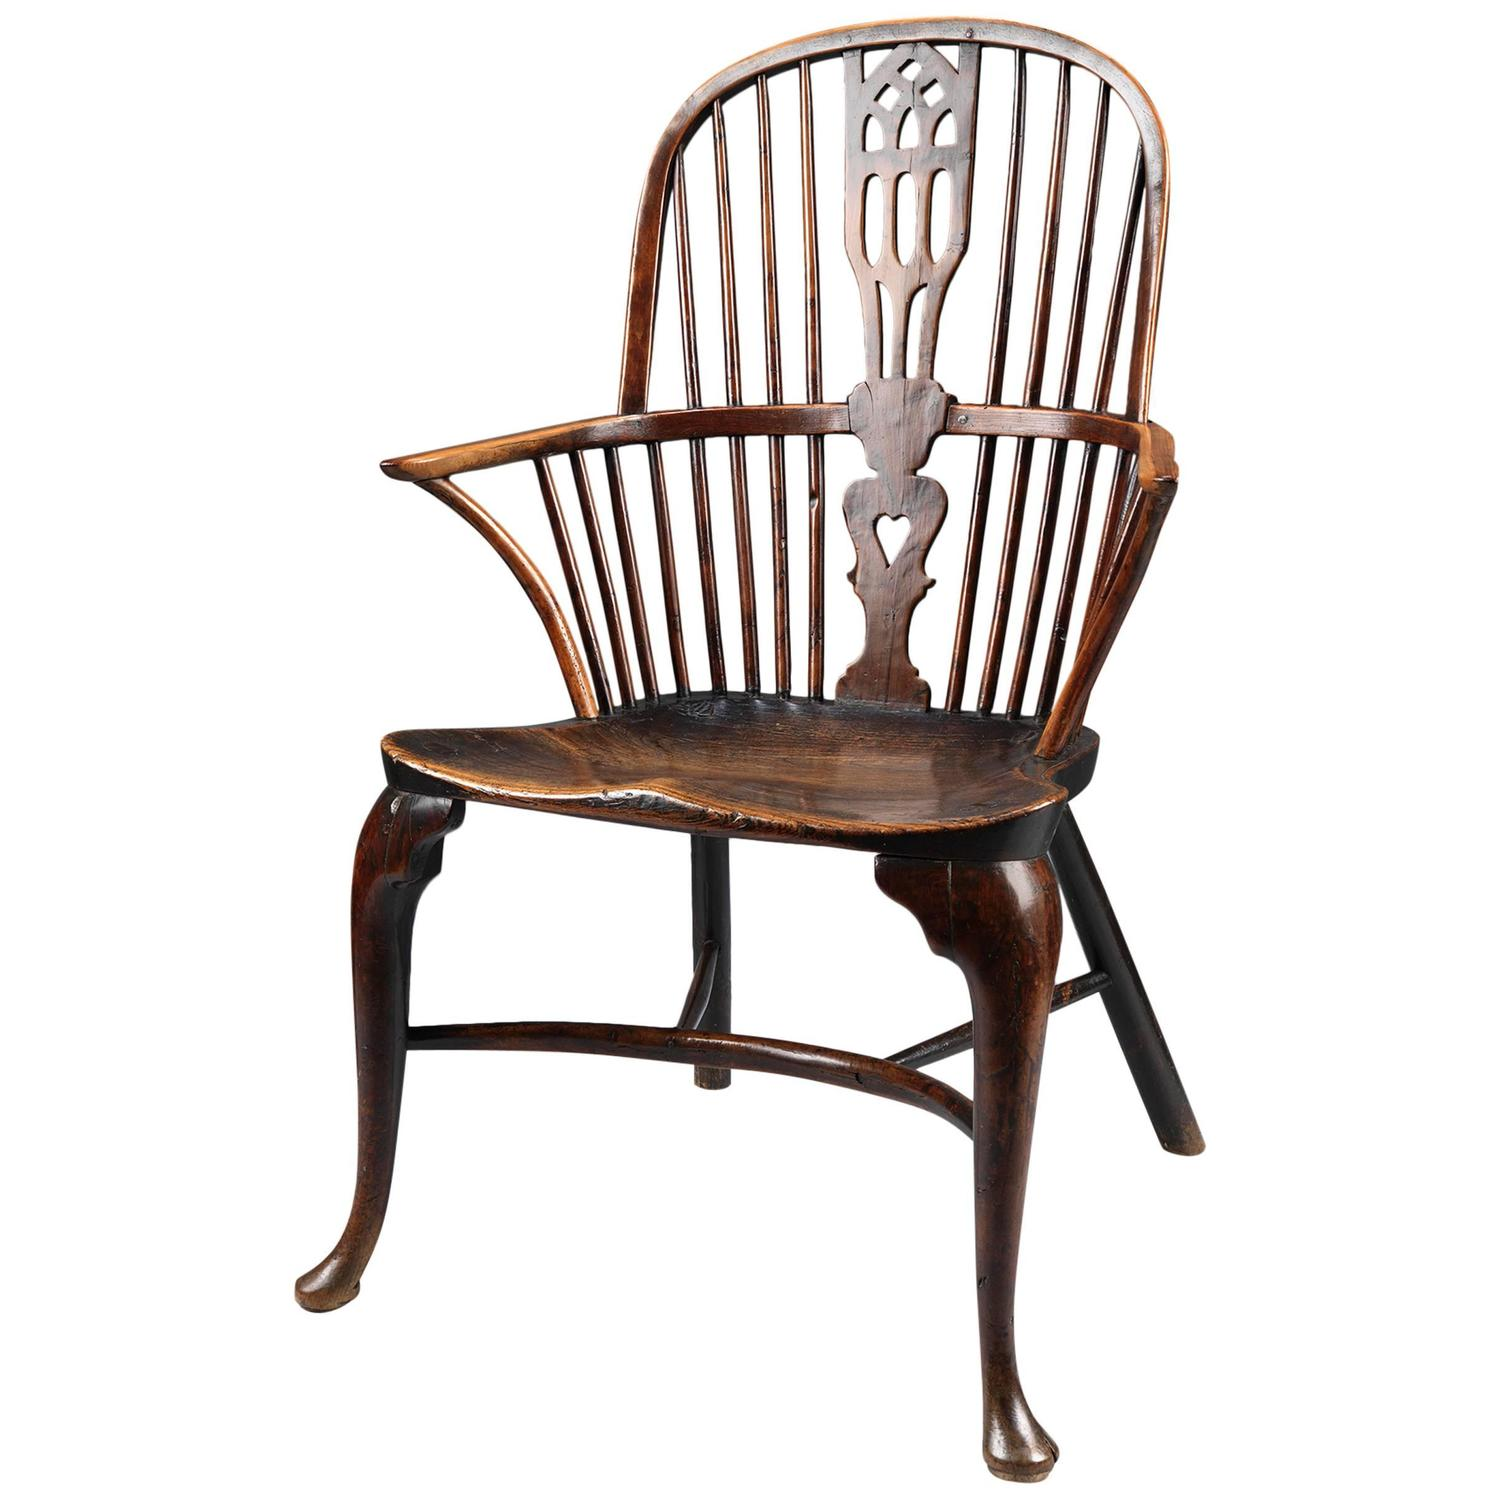 18th Century Cabriole Leg Windsor Bow Back Chair at 1stdibs